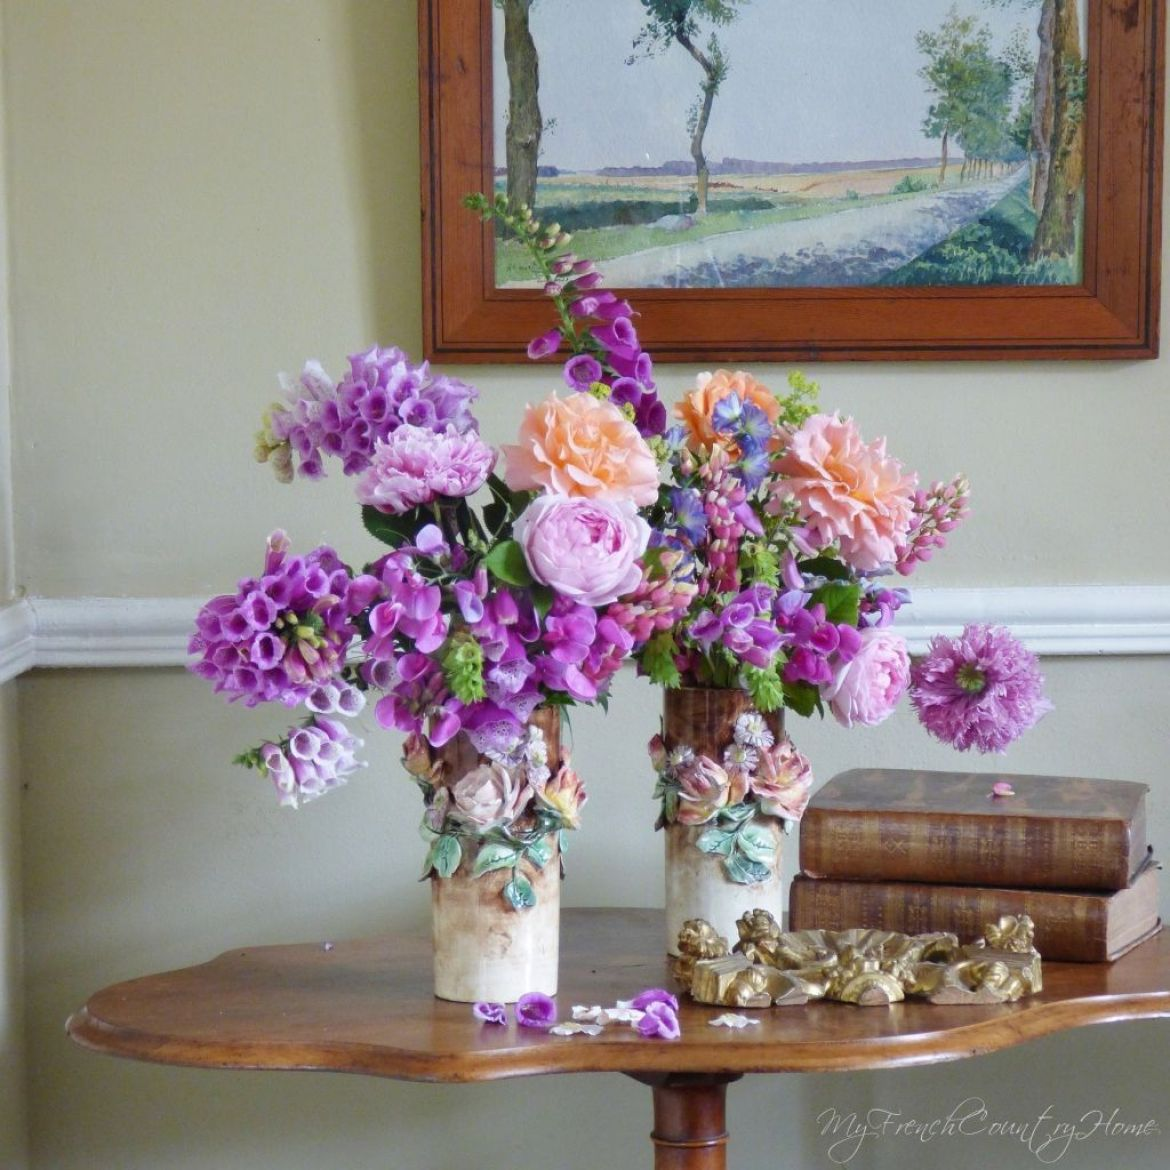 roses and foxgloves arranged in antique vases